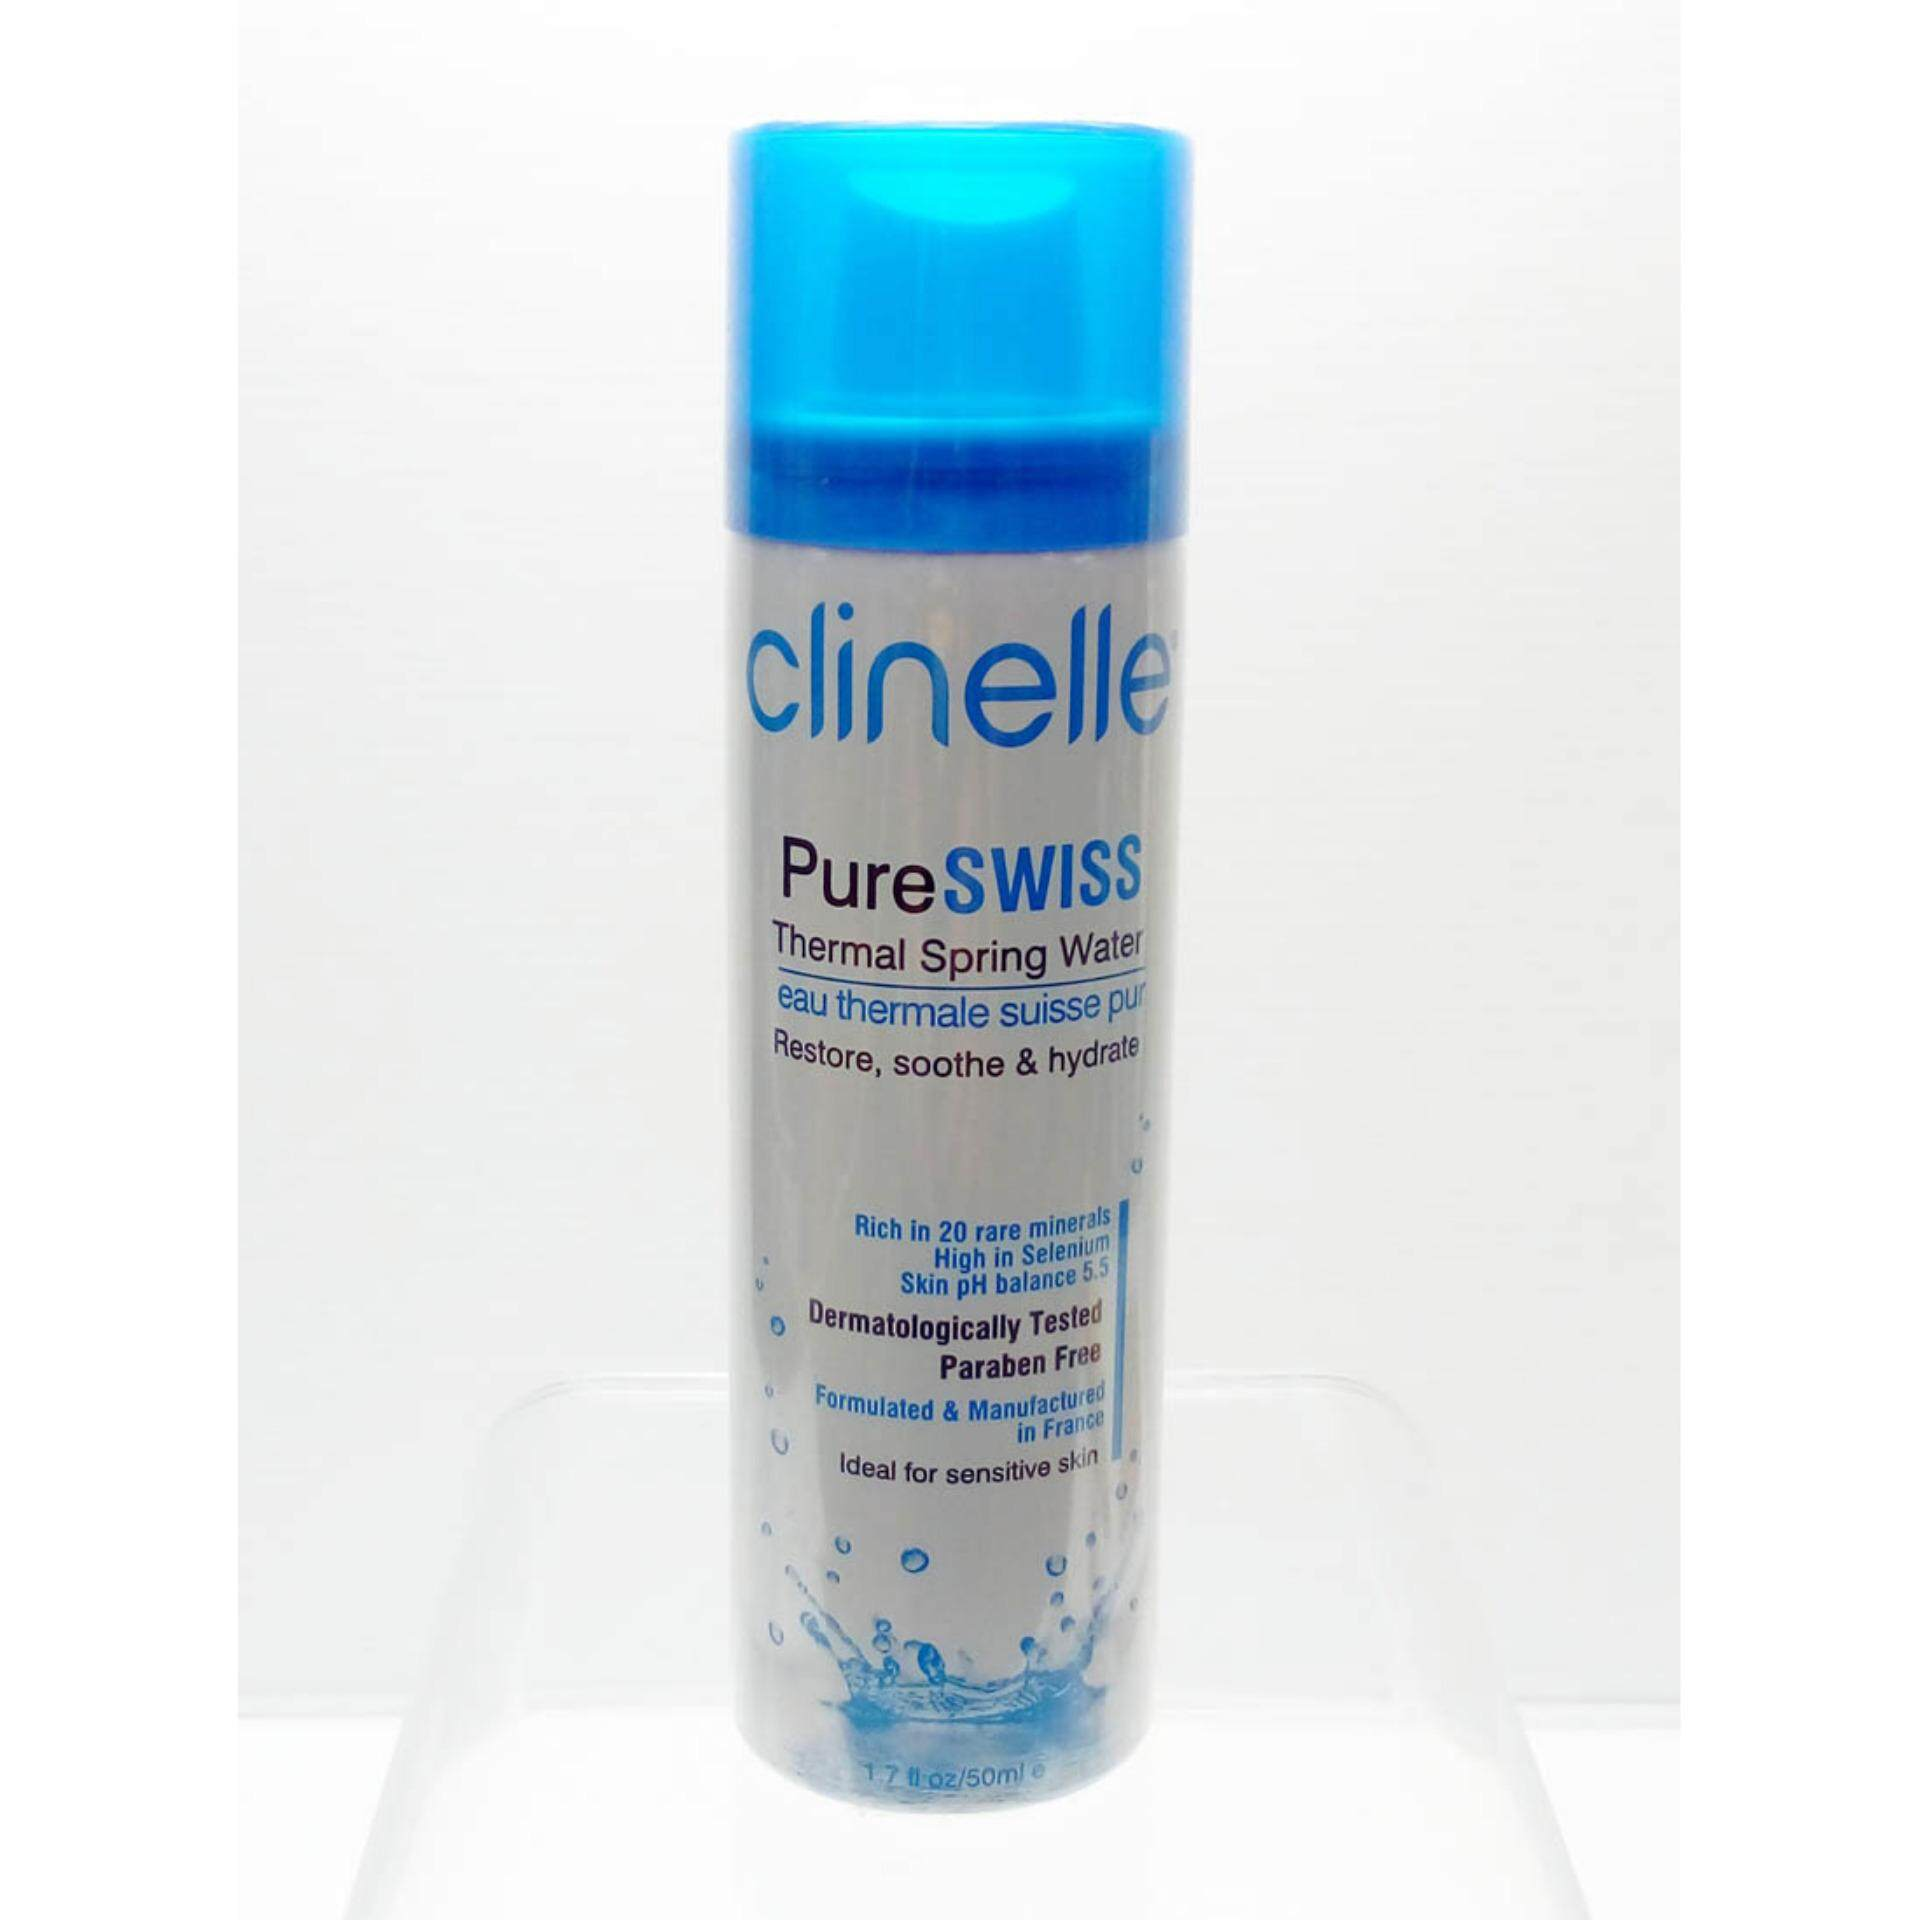 Clinelle Pure Swiss Thermal Spring Water 50ml X 1